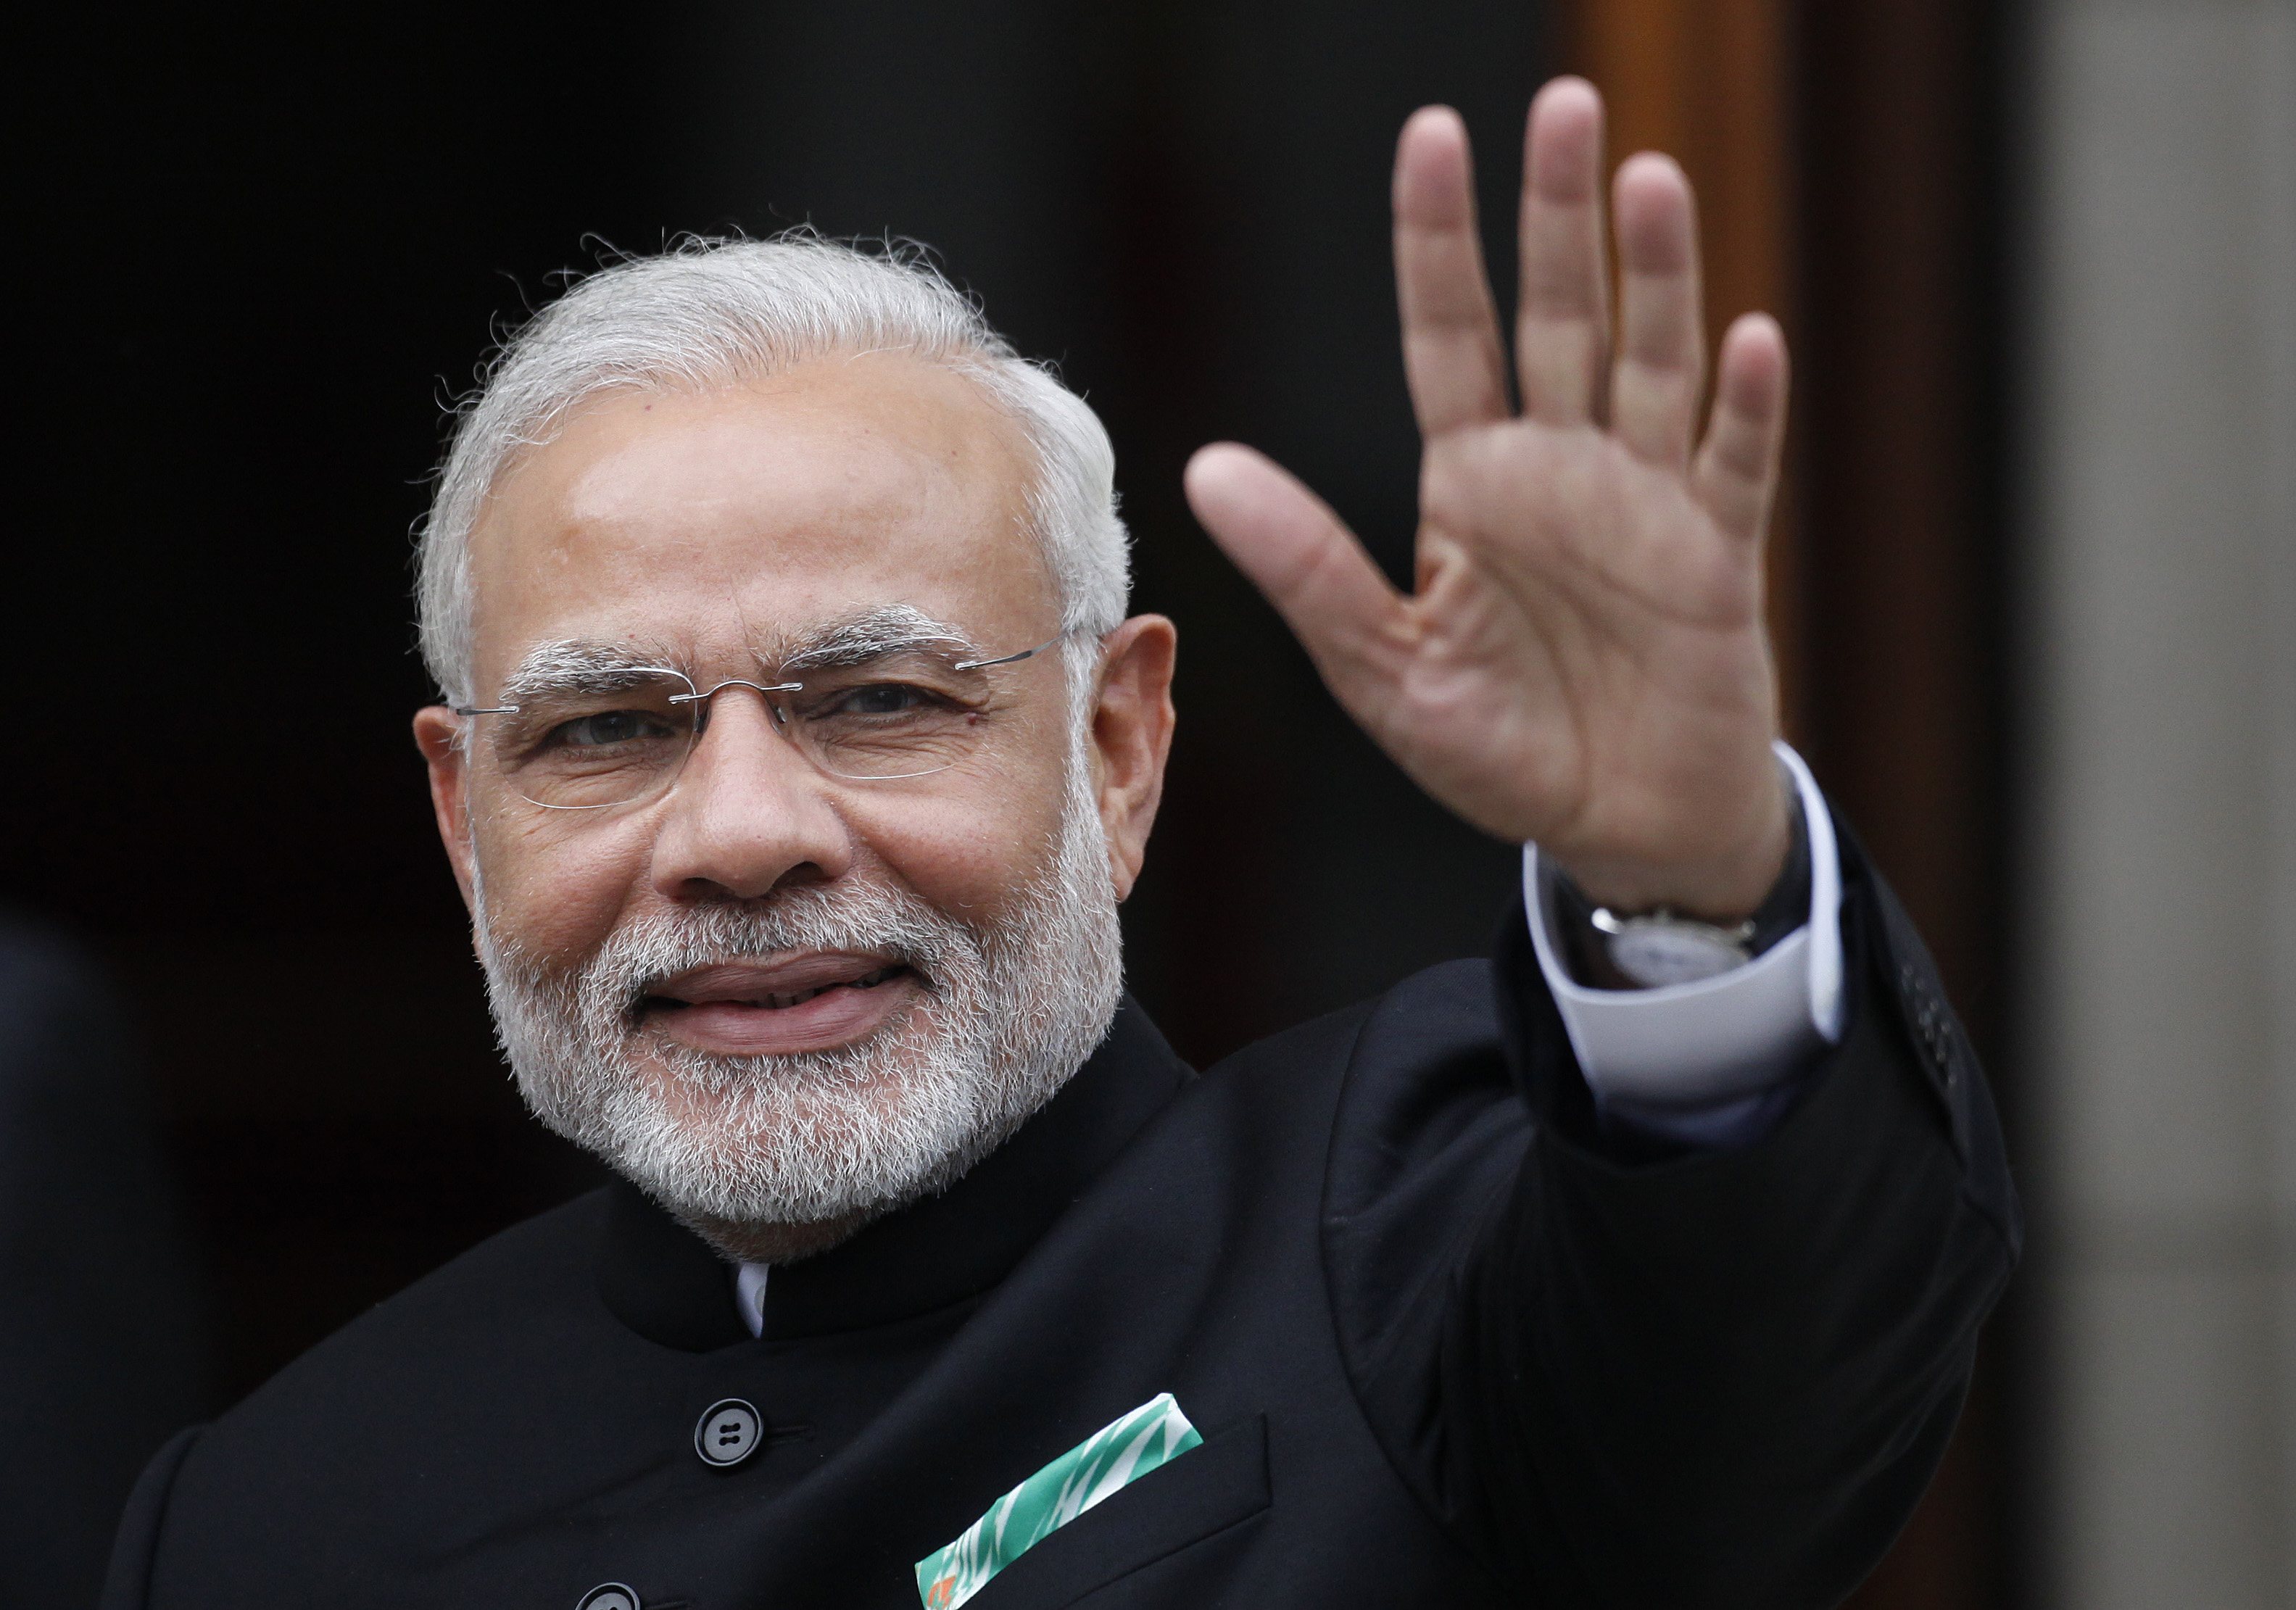 Indian Prime Minister Narendra Modi waves as he arrives for a meeting with Irish Prime Minister Enda Kenny at Government Buildings, Dublin, Ireland, Wednesday, Sept. 23, 2015. Modi arrived in Ireland for high level talks focusing on strengthening economic, trade and investment between the two countries. (AP Photo/Peter Morrison)